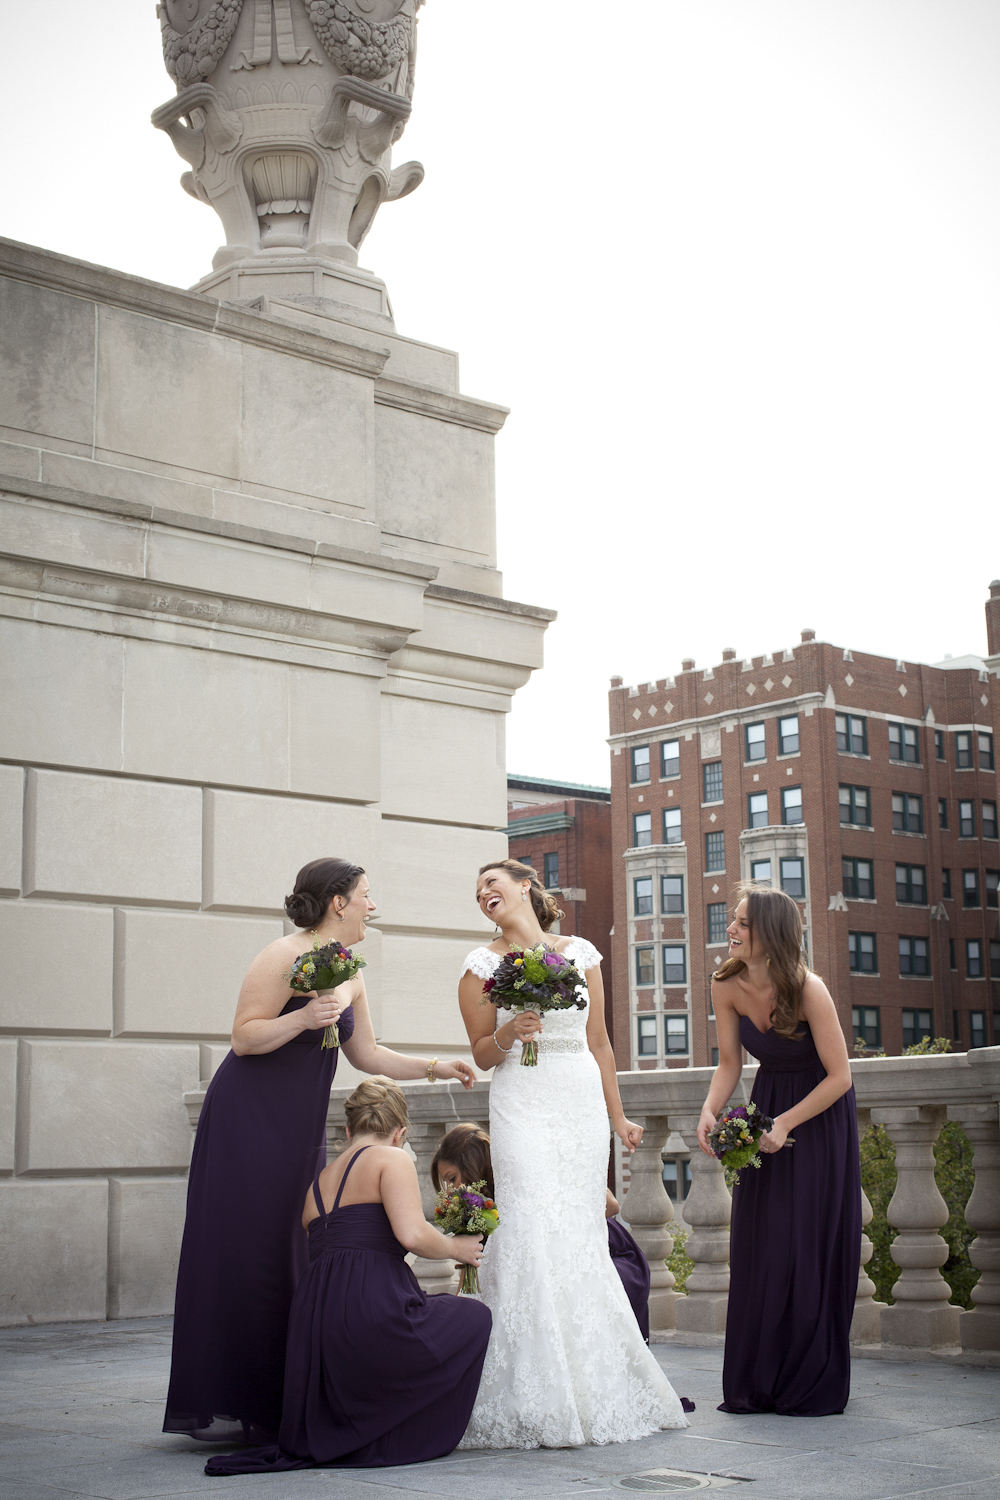 Indianapolis-Indiana-War-Memorial-Wedding-Photographer-Crowes-Eye-Photography-Bride-Groom-Ceremony-123.jpg